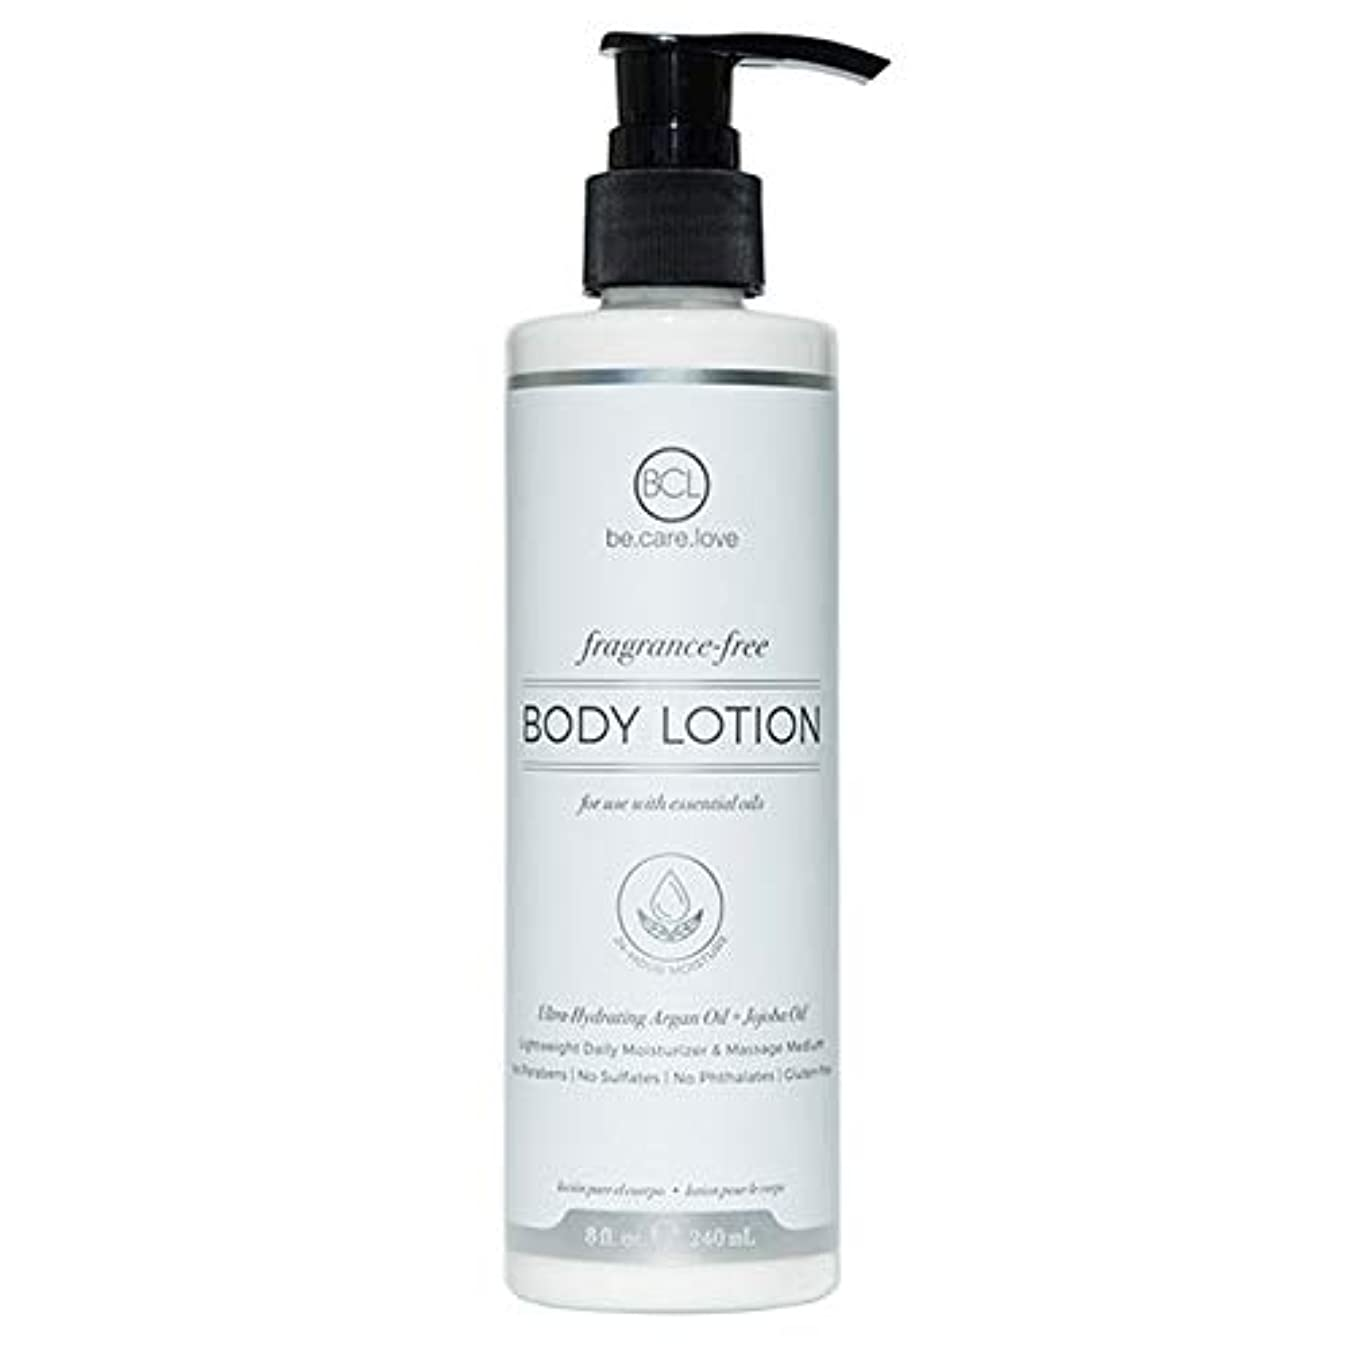 [Be Care Love Naturals ] ケア愛のナチュラルなる無香料ボディローション - Be Care Love Naturals Fragrance-Free Body Lotion [並行輸入品]